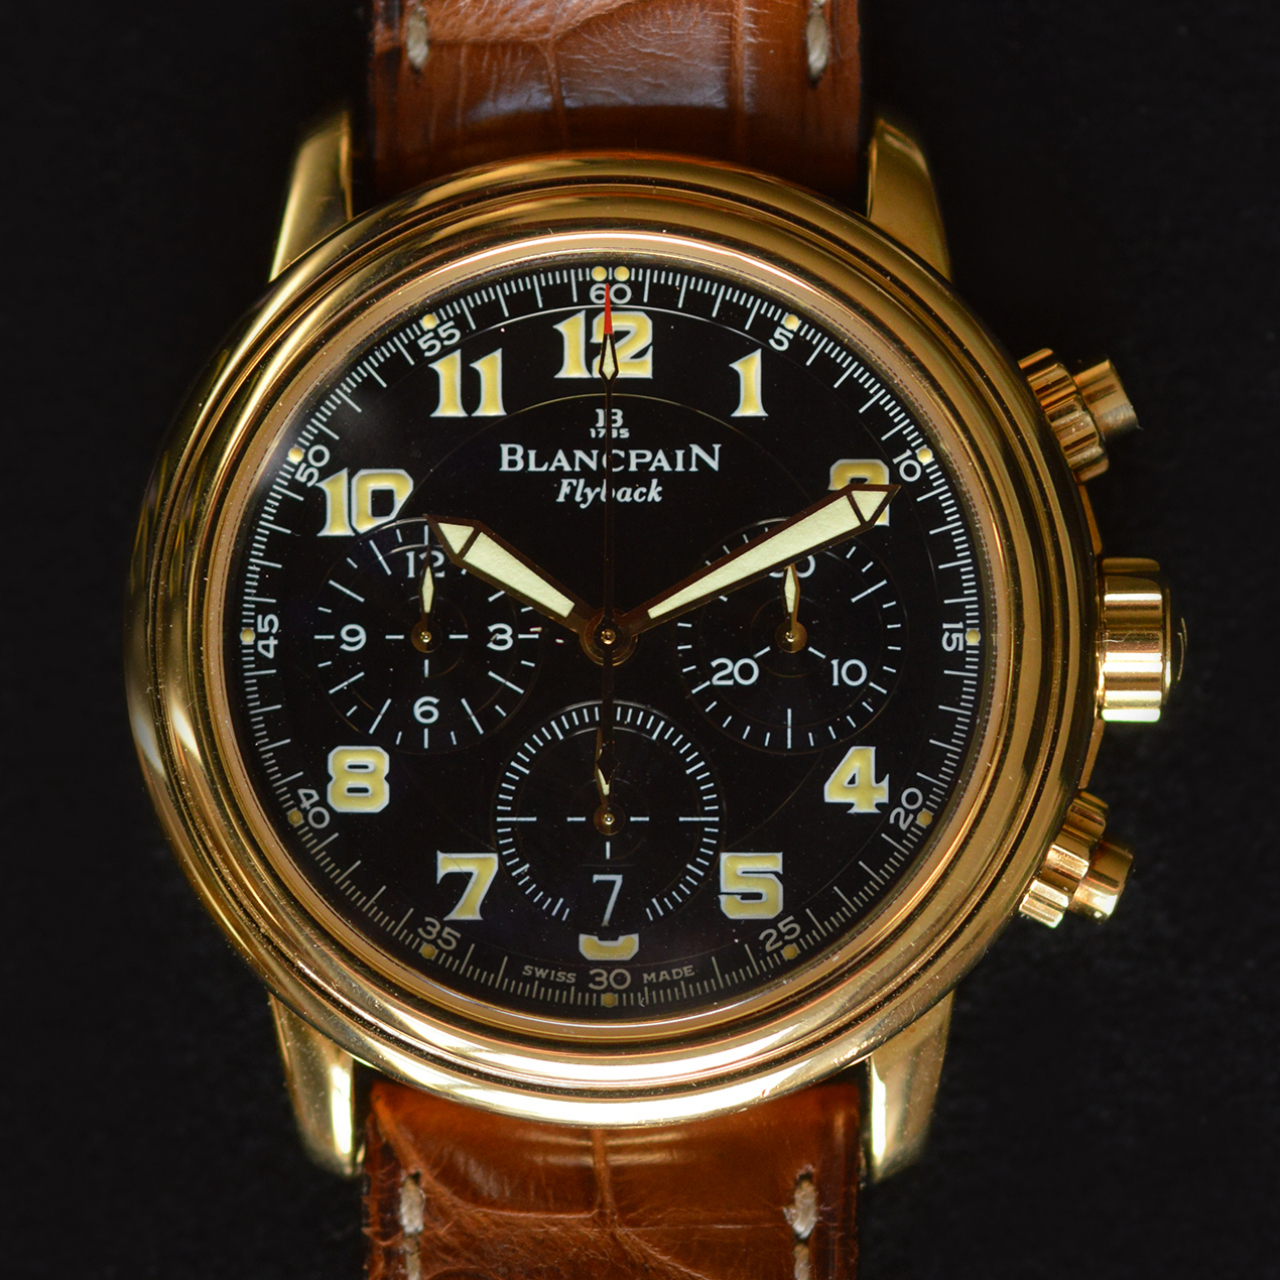 blancpain-flyback-chronograph-leman-ref-2185f-cal-1185-gold-18k